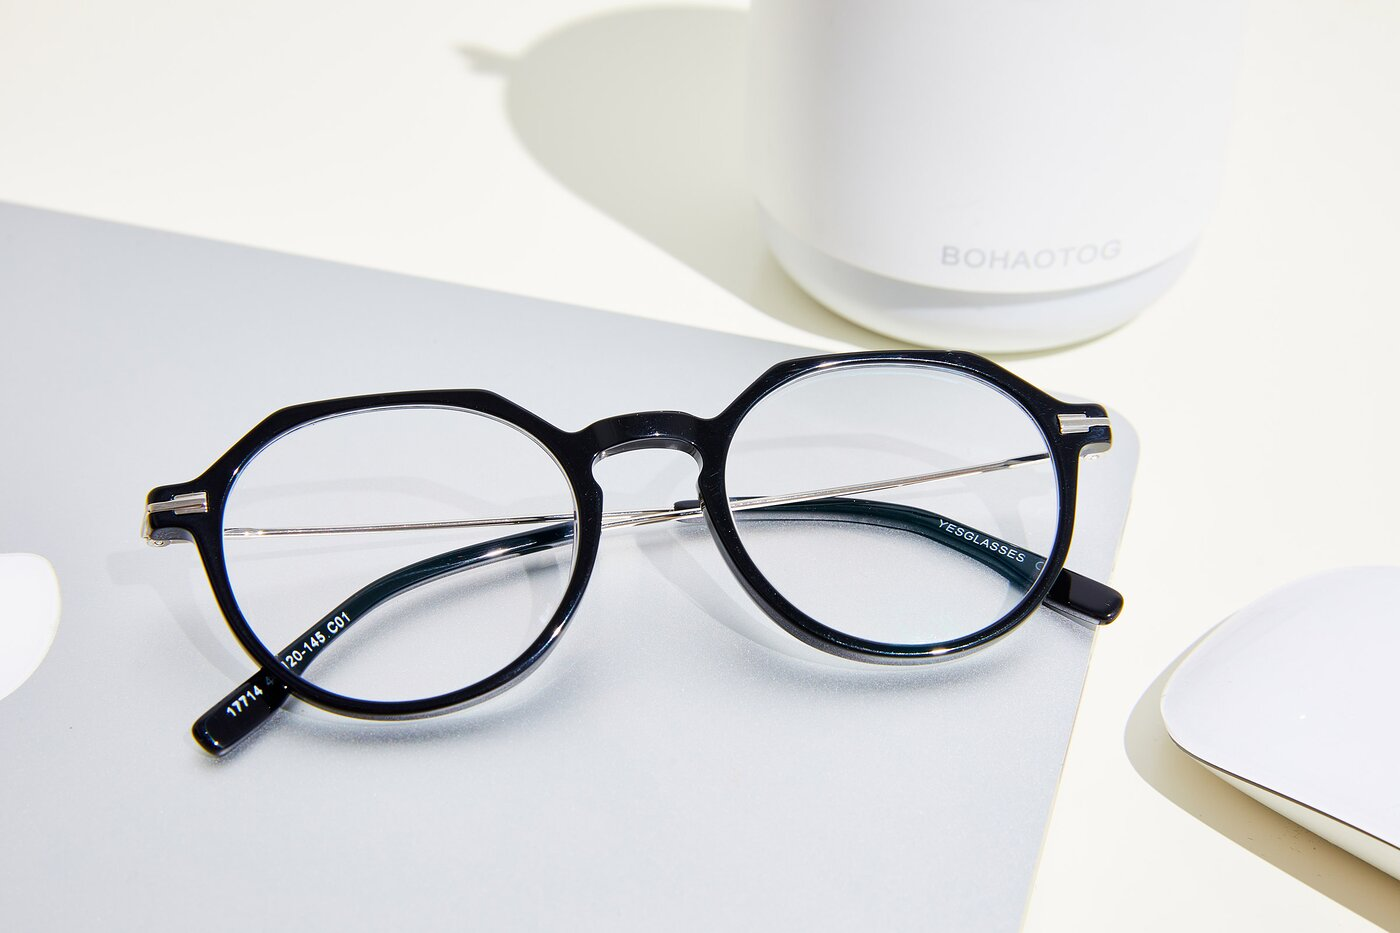 Black Geek-Chic Acetate Geometric Eyeglasses